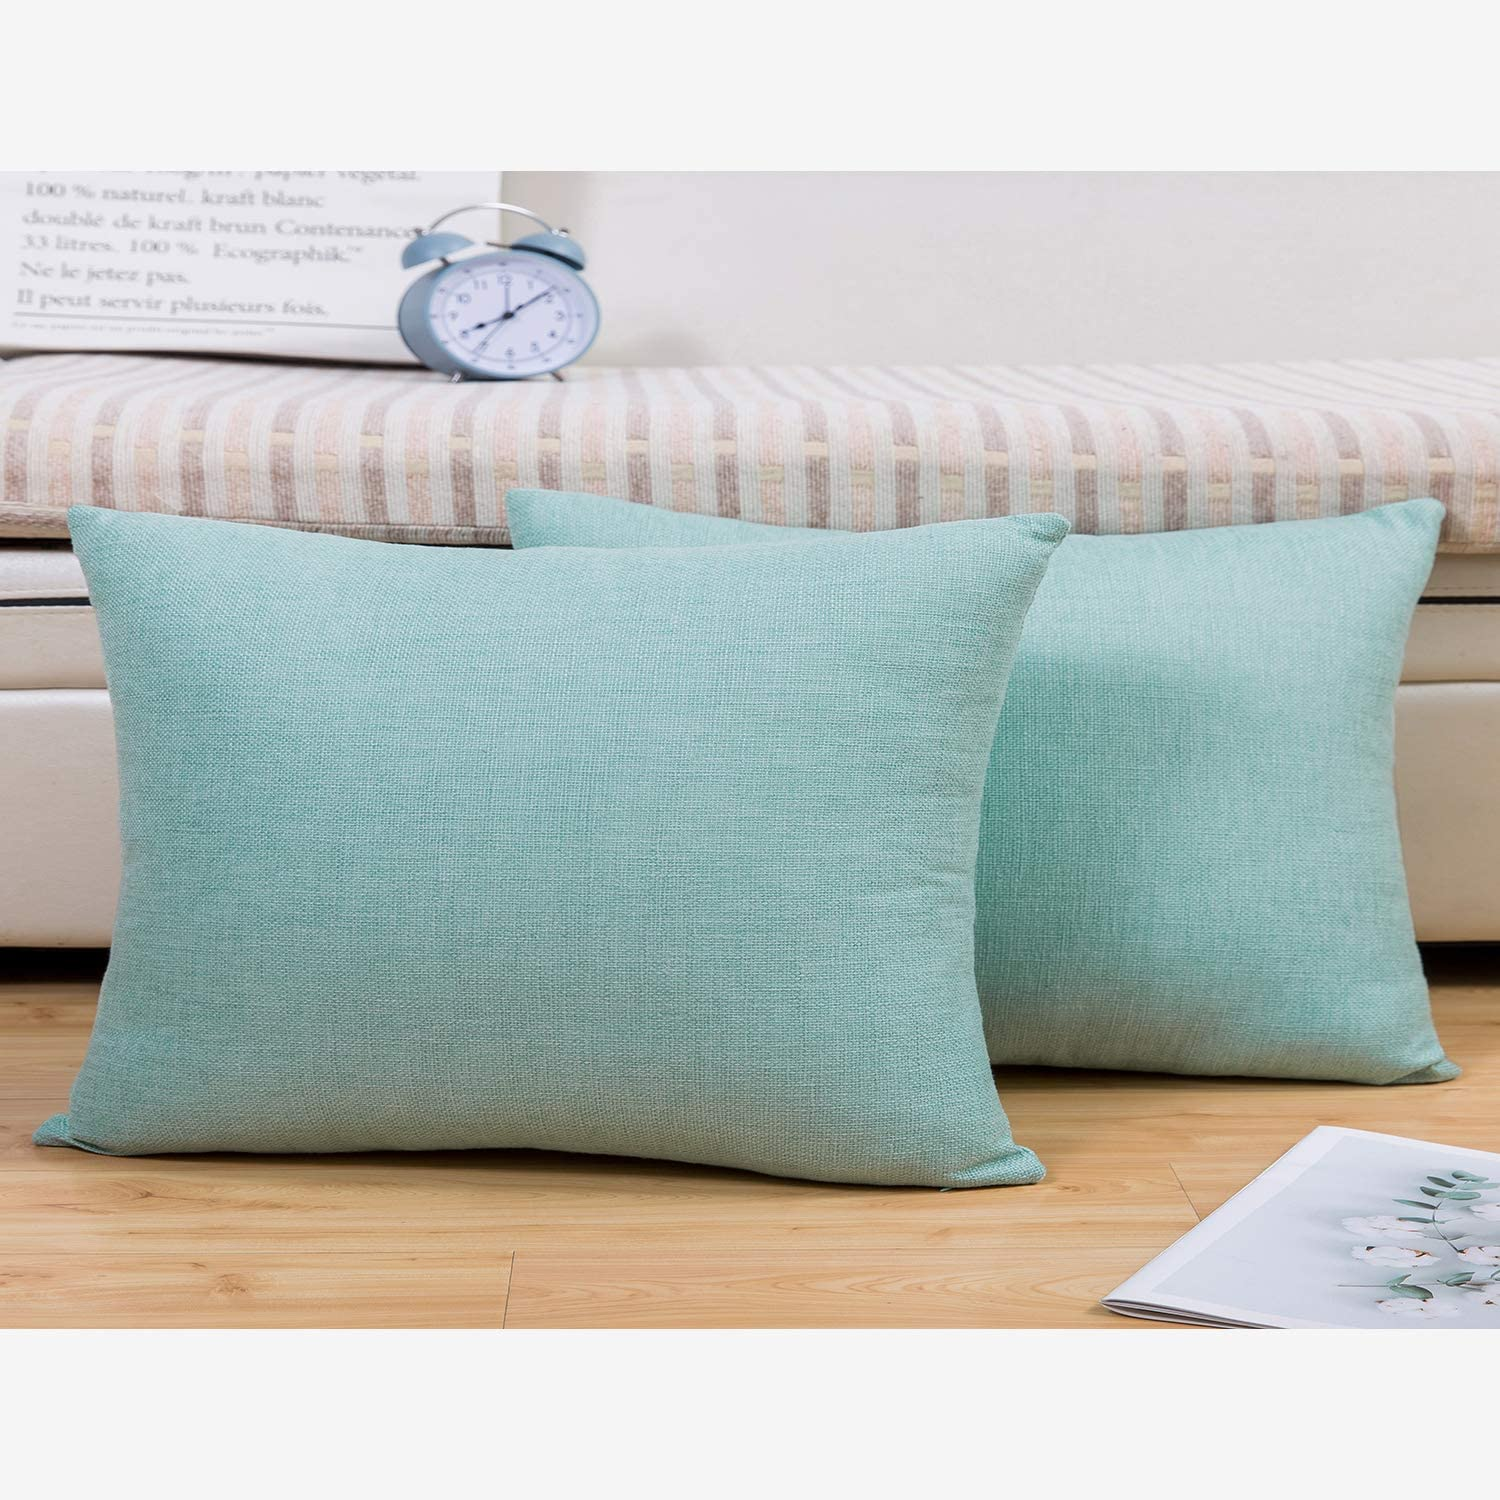 Jepeak Comfy Throw Pillow Covers Cushion Cases Pack of 2 Cotton Linen Farmhouse Modern Decorative Solid Rectangular Pillow Cases for Couch Sofa Bed (Light Teal, 16 x 24 Inches)